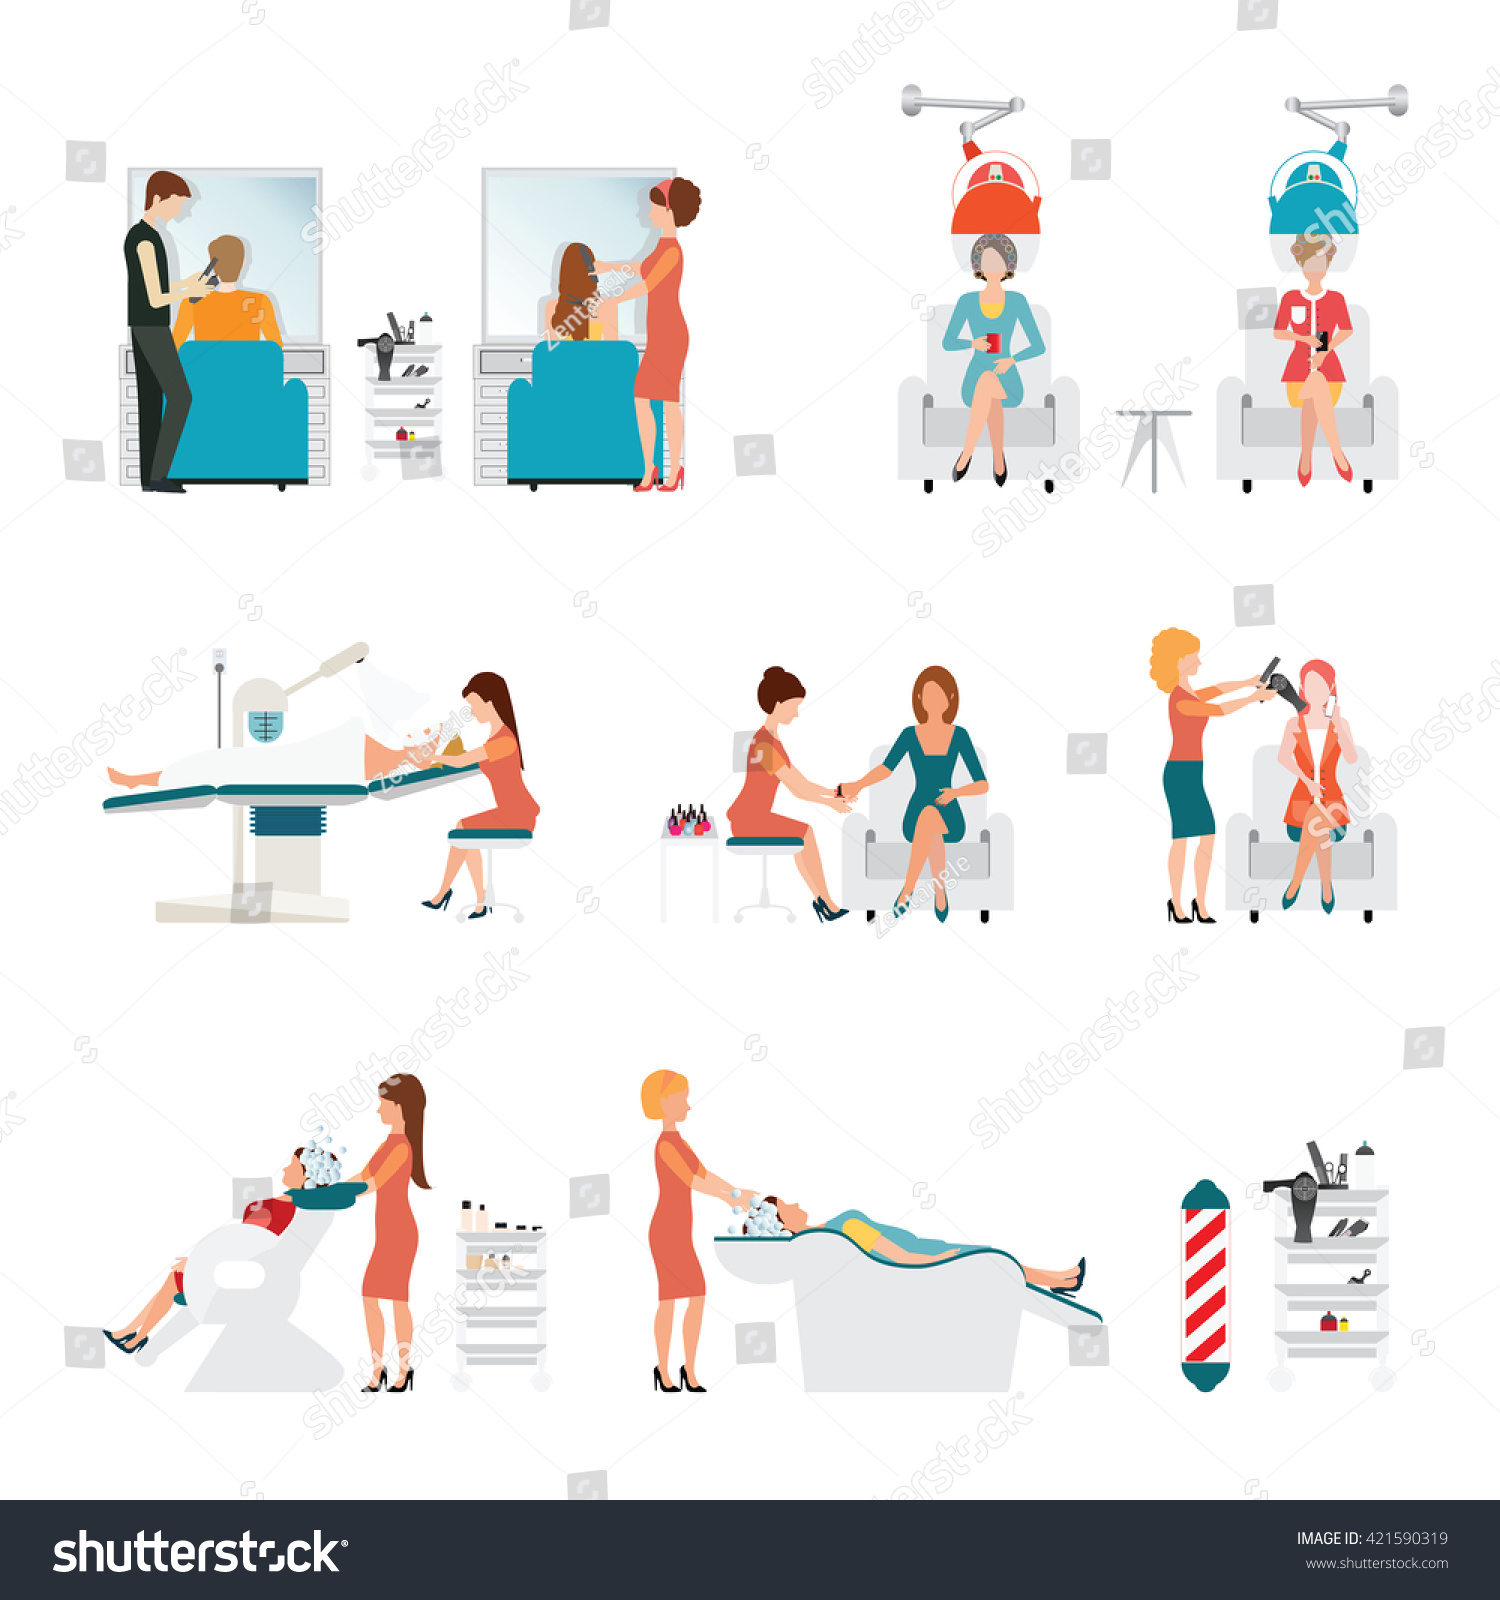 Hair salon chair isolated stock photos illustrations and vector art -  Vectors Illustrations Footage Music Hair Beauty Salon With Hairdresser And Customer Hair Curl Rollers Washing Hair Hair